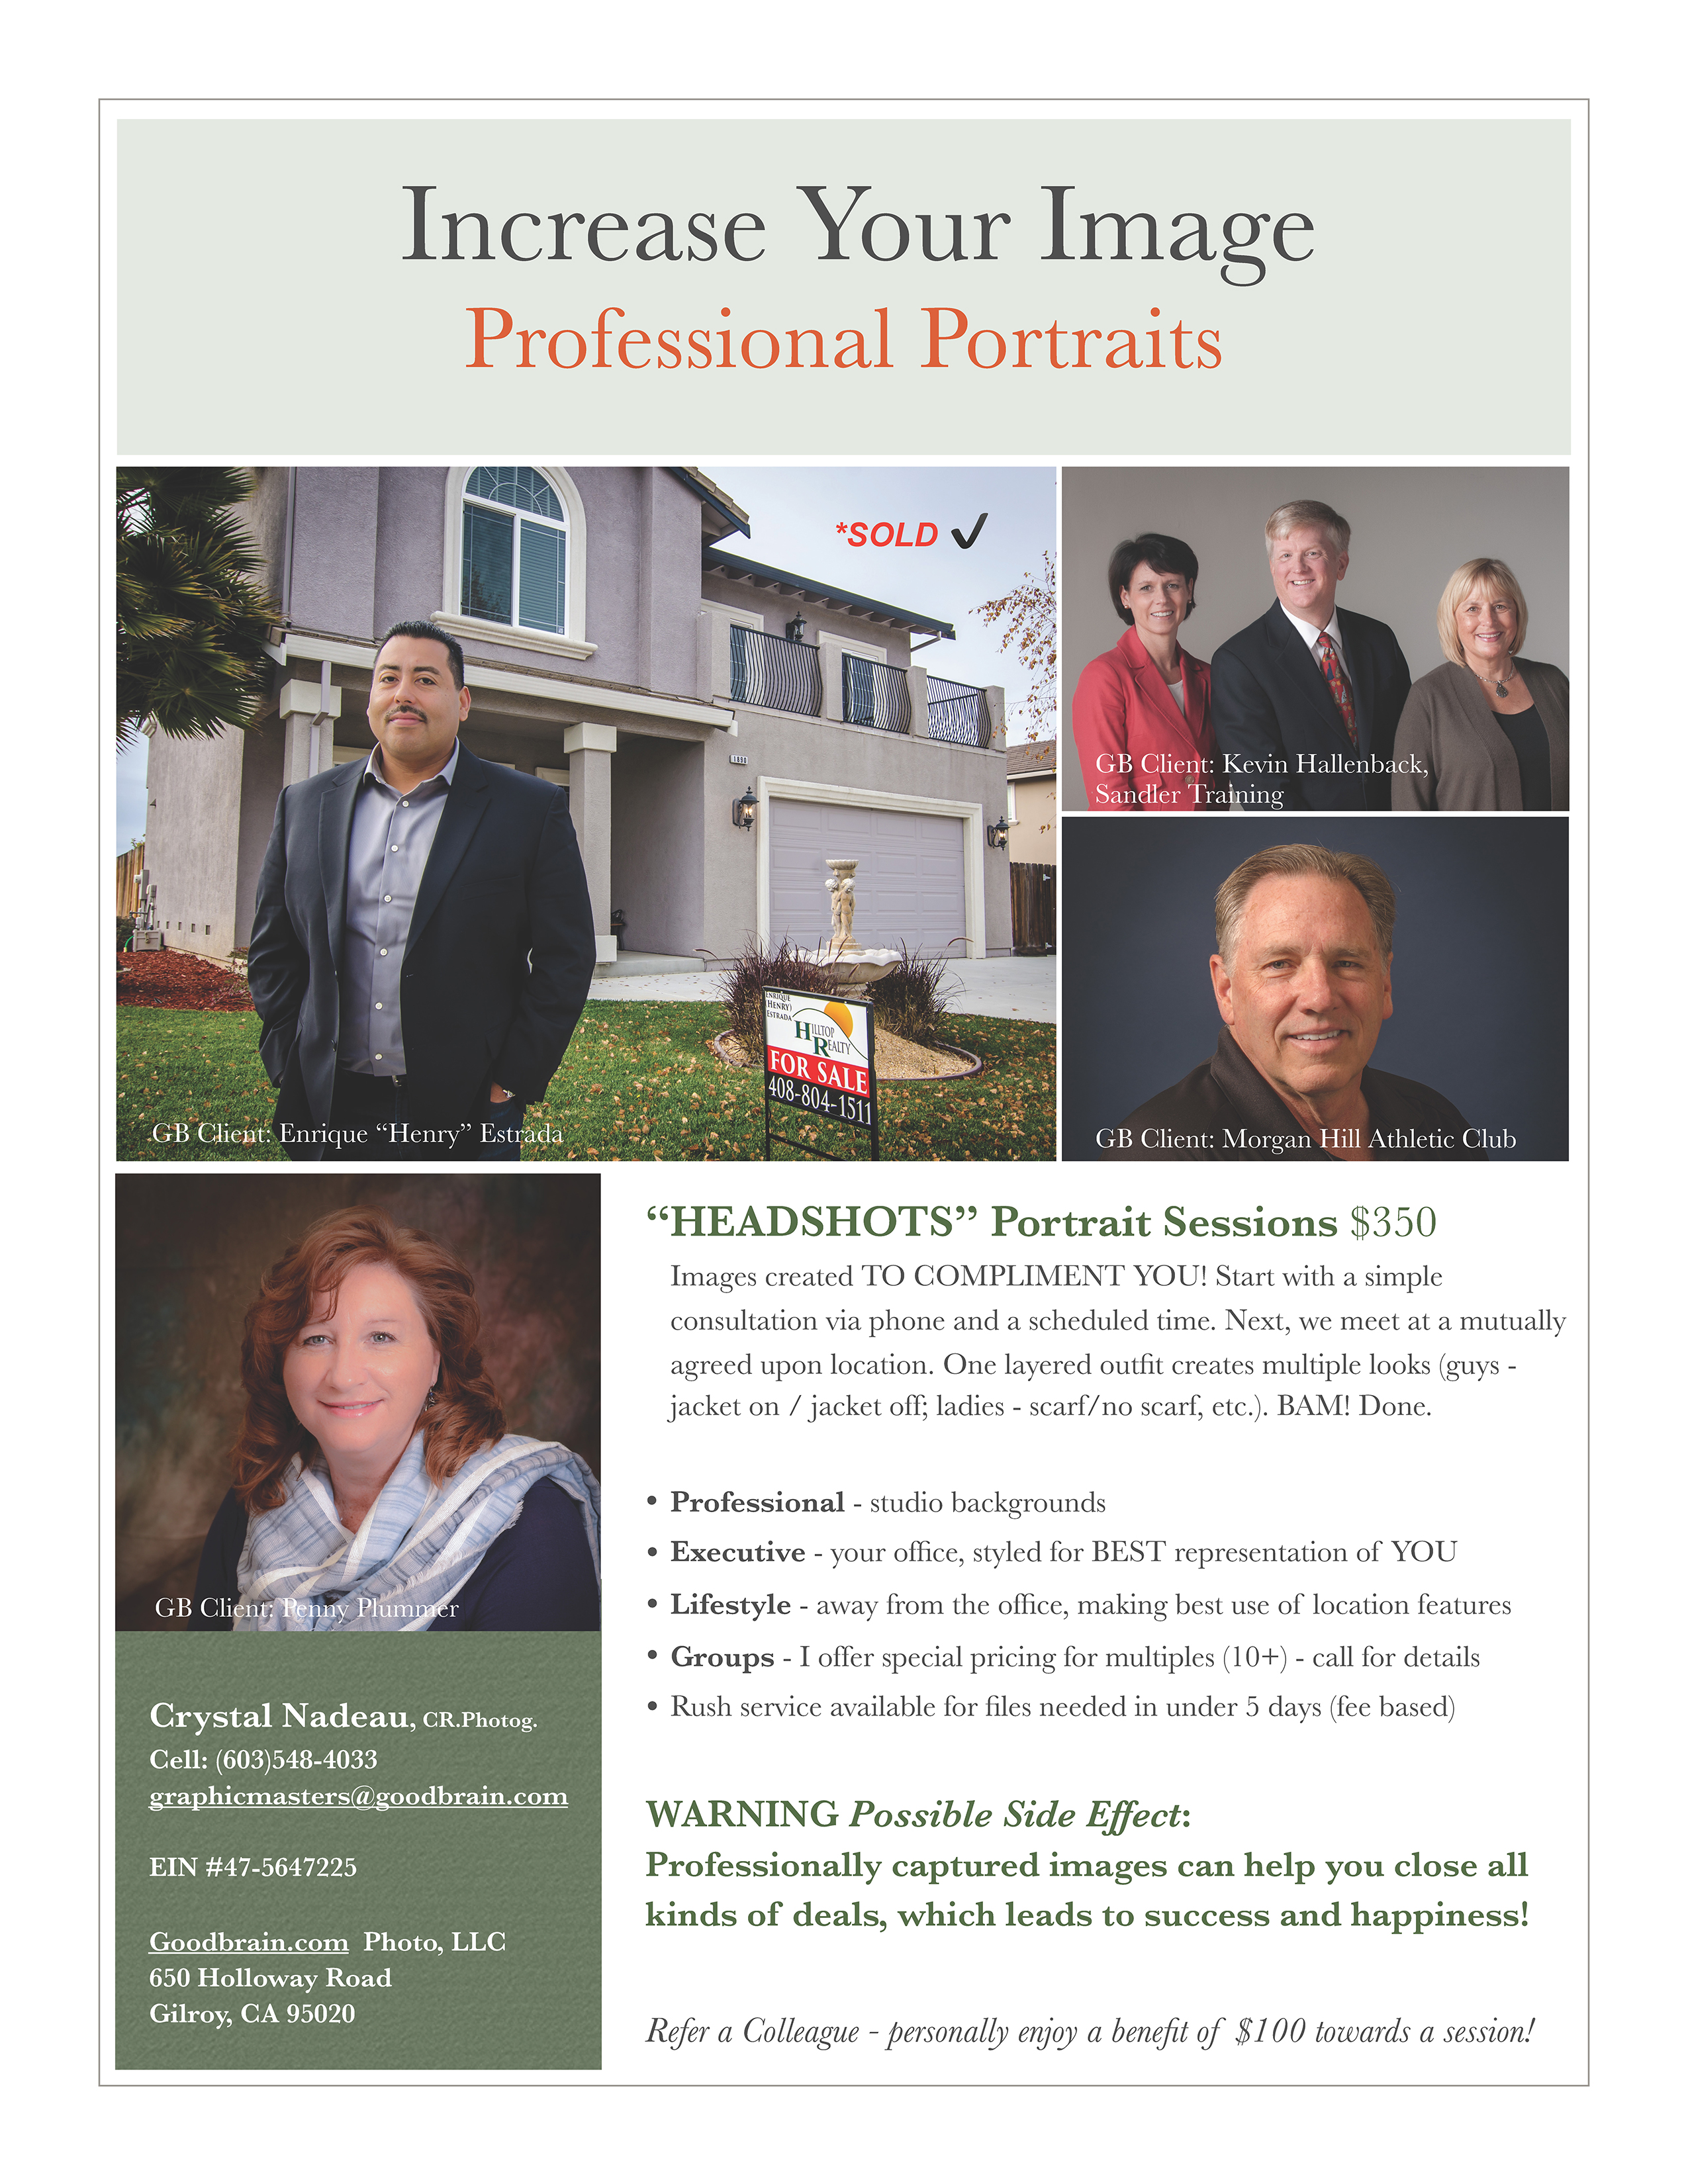 Improve Your Image with Professional Portraits!